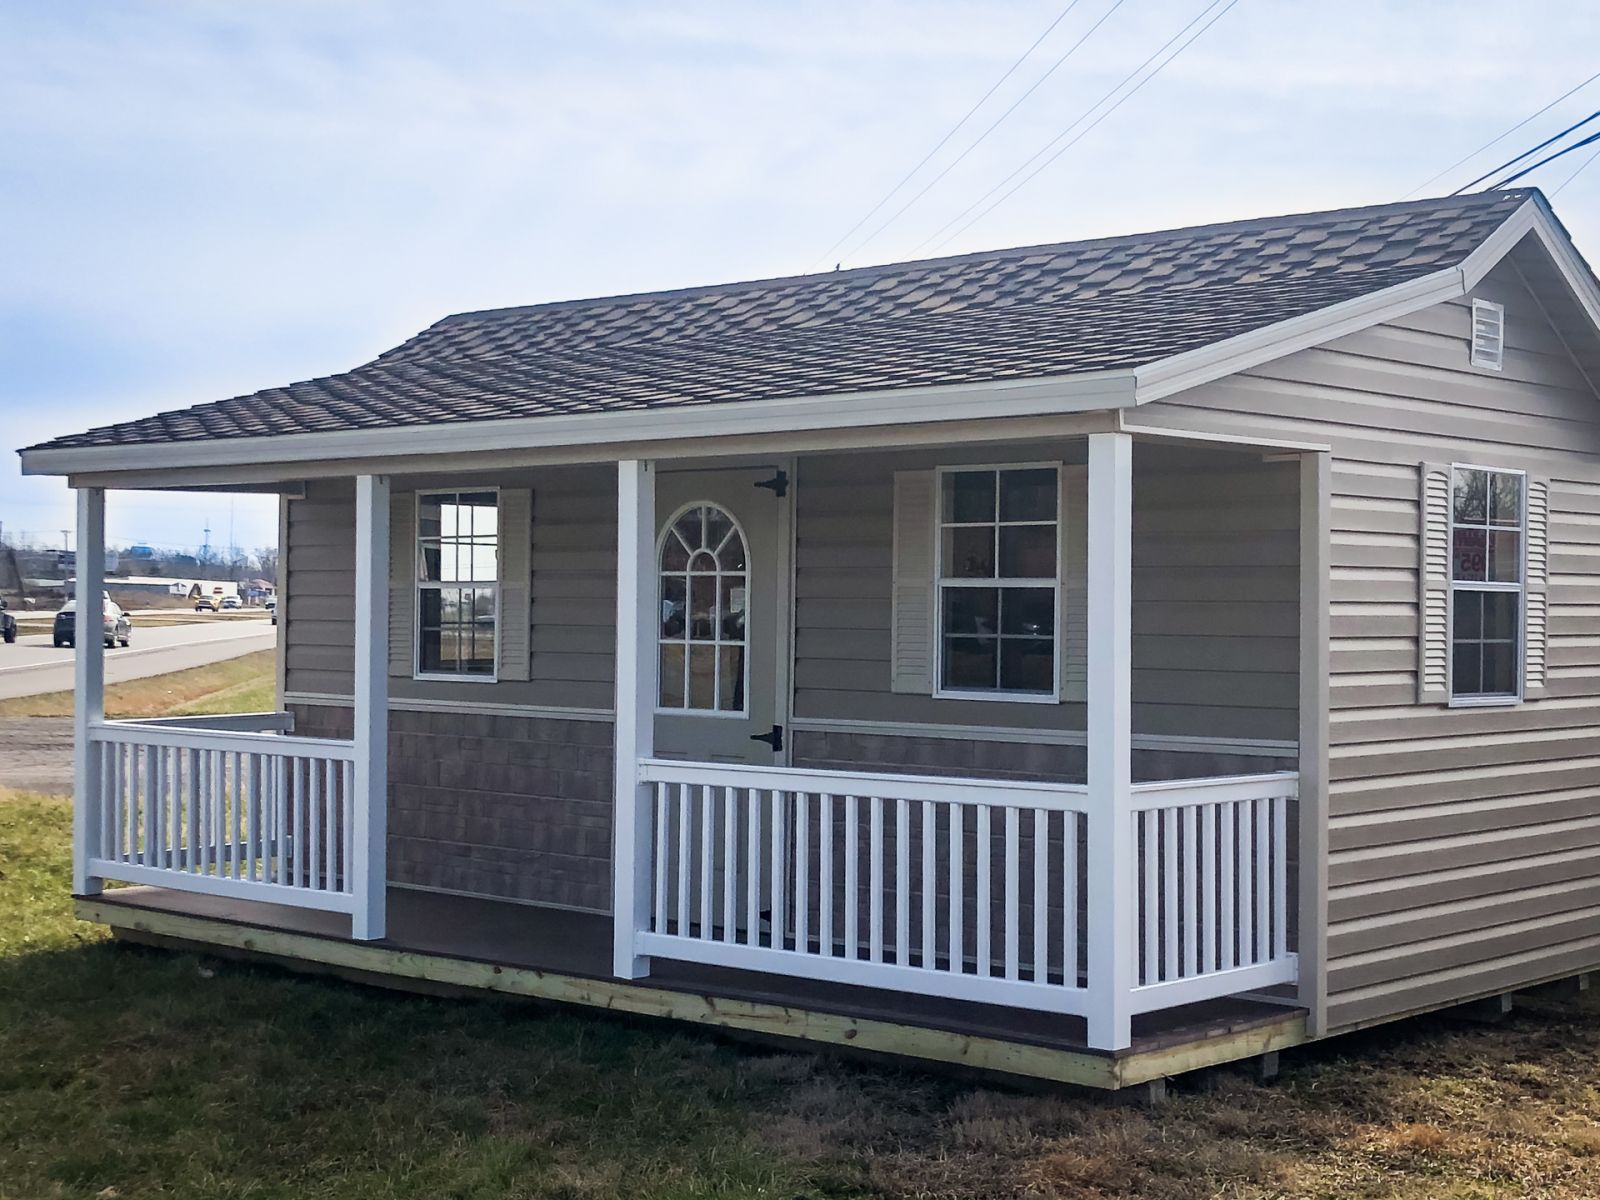 A prefab cabin shed for sale in Louisville, KY